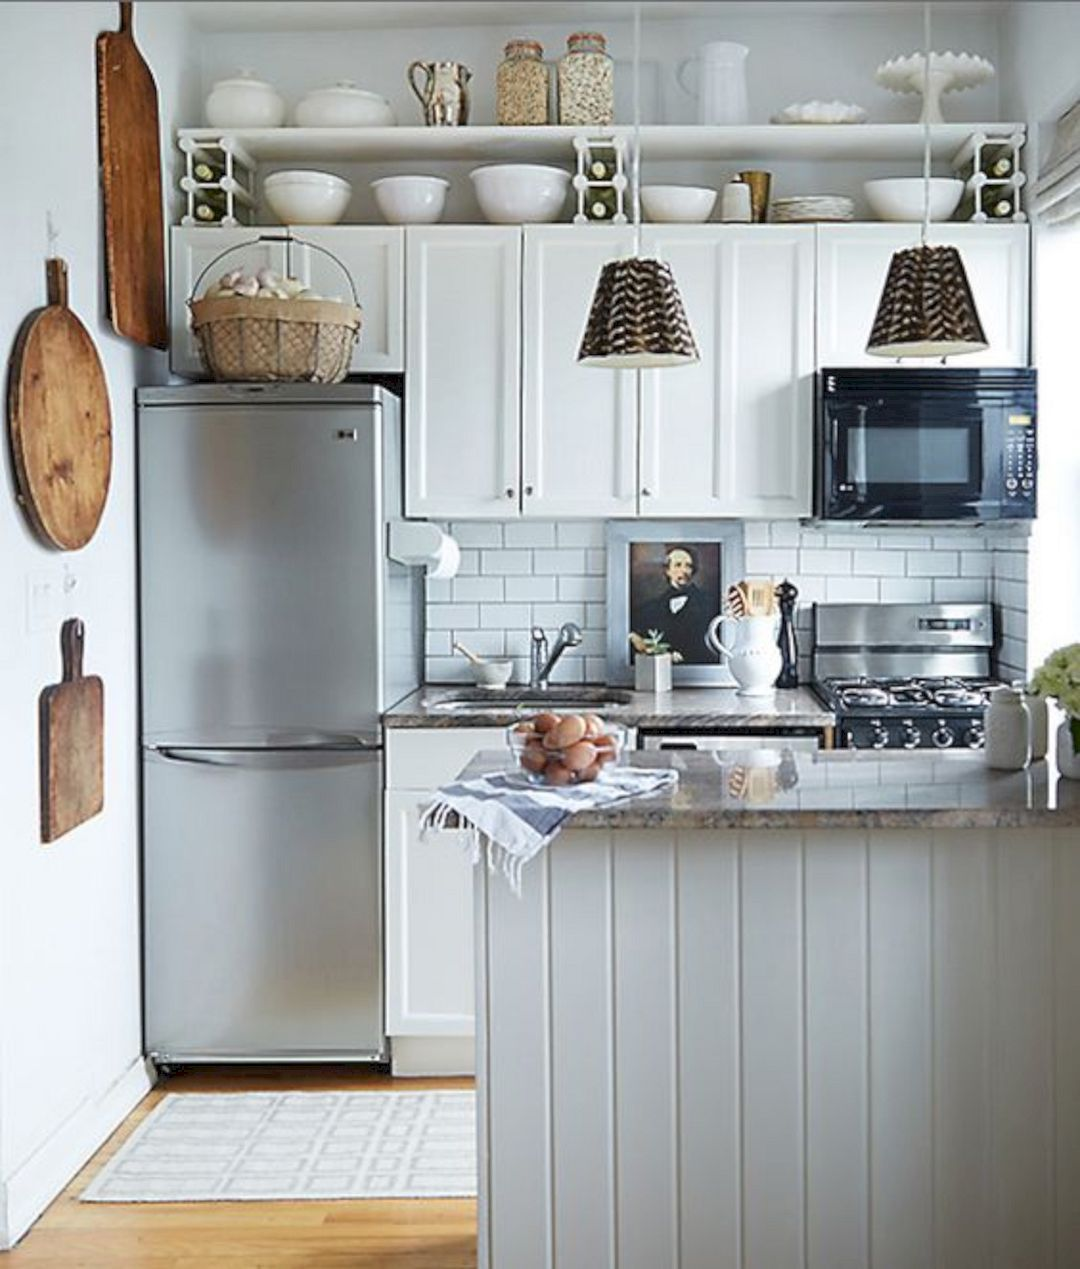 15 Clever Renovation Ideas to Update Your Small Kitchen | Clever ...